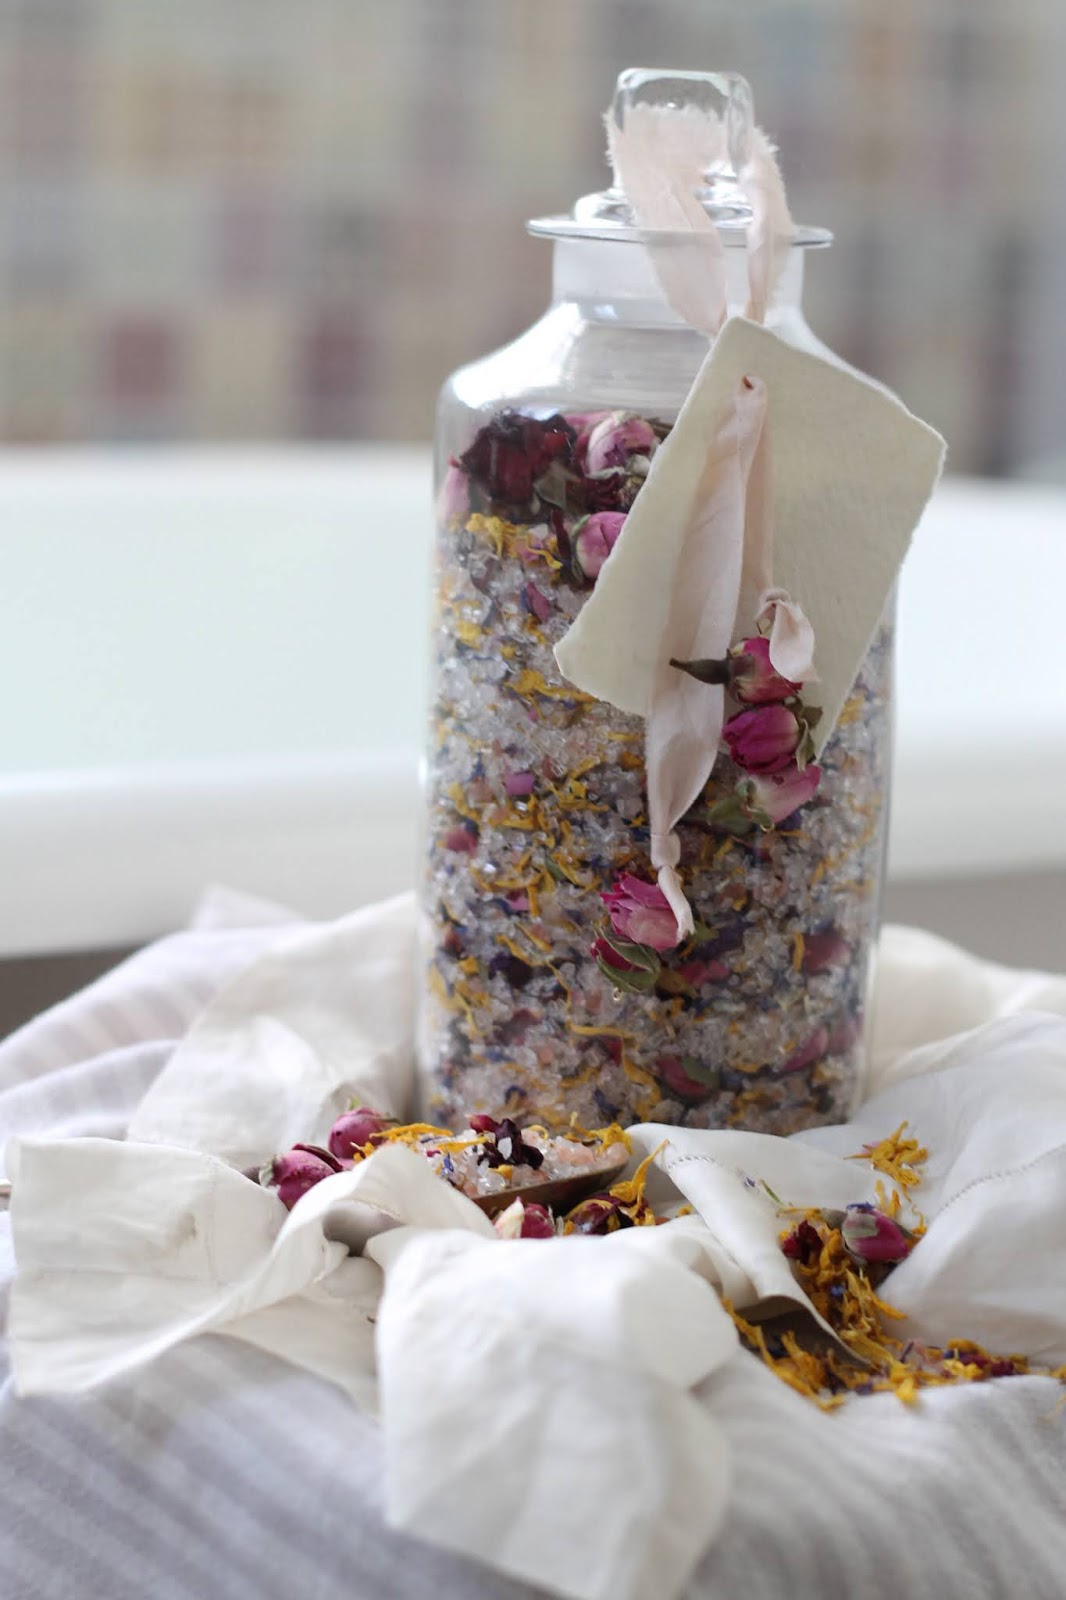 DIY – Floral Bath Salts in collaboration with Polly's Petals